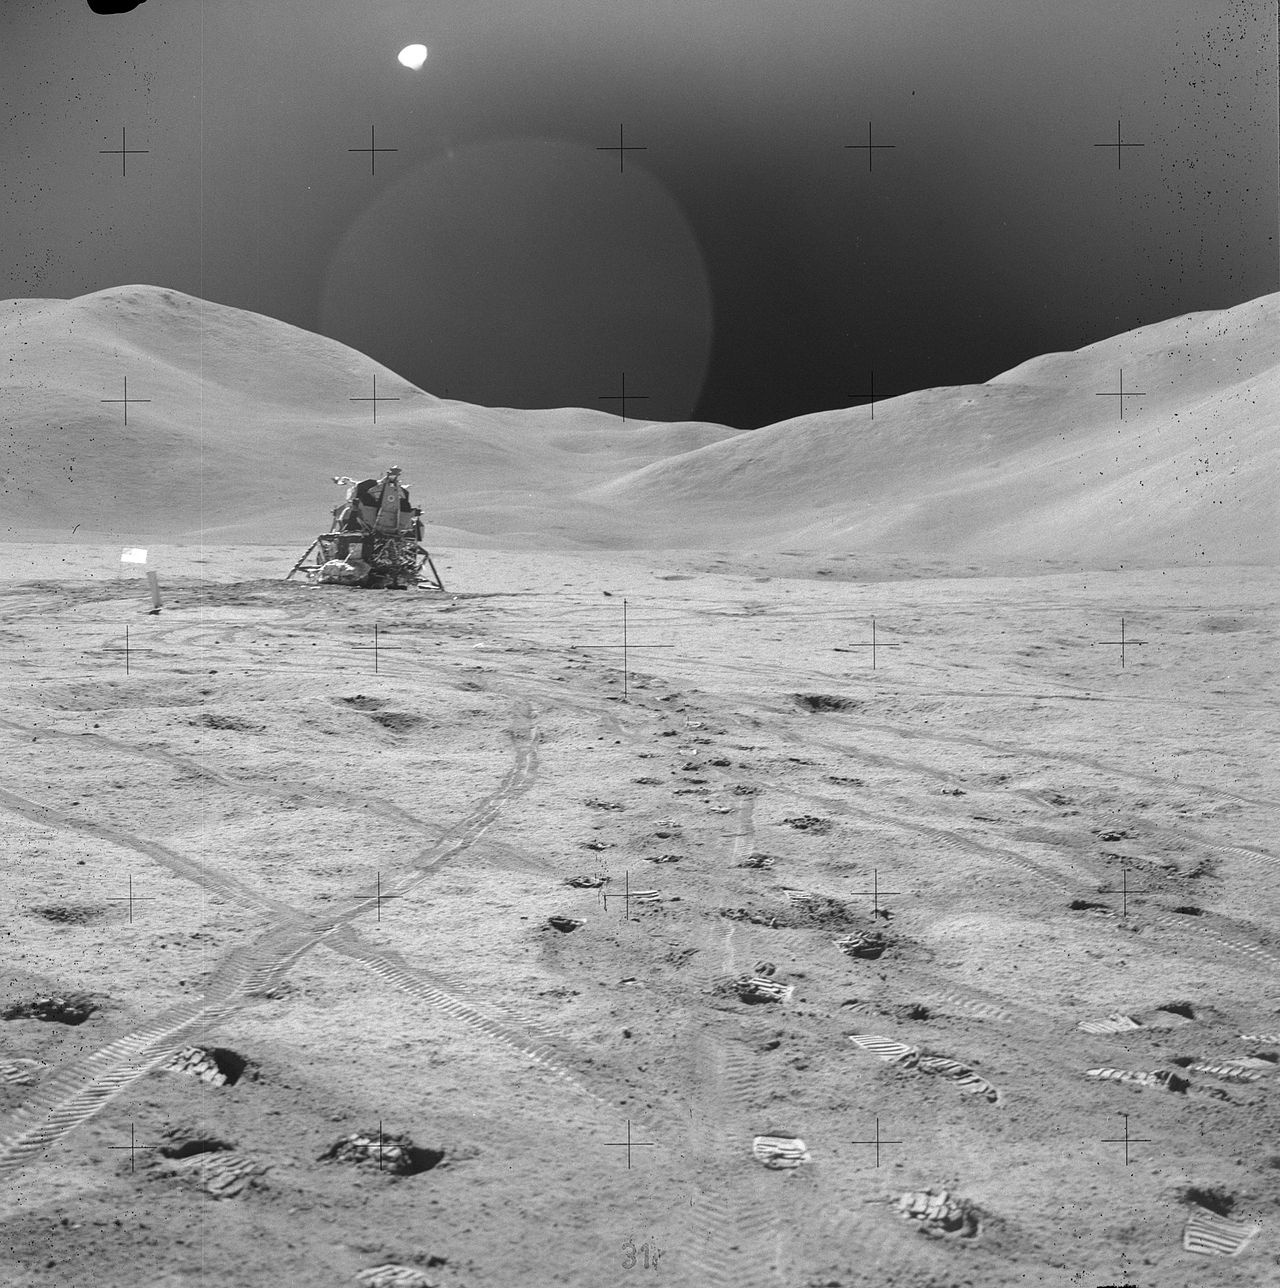 1280px-Apollo_15_LM_on_surface.jpg